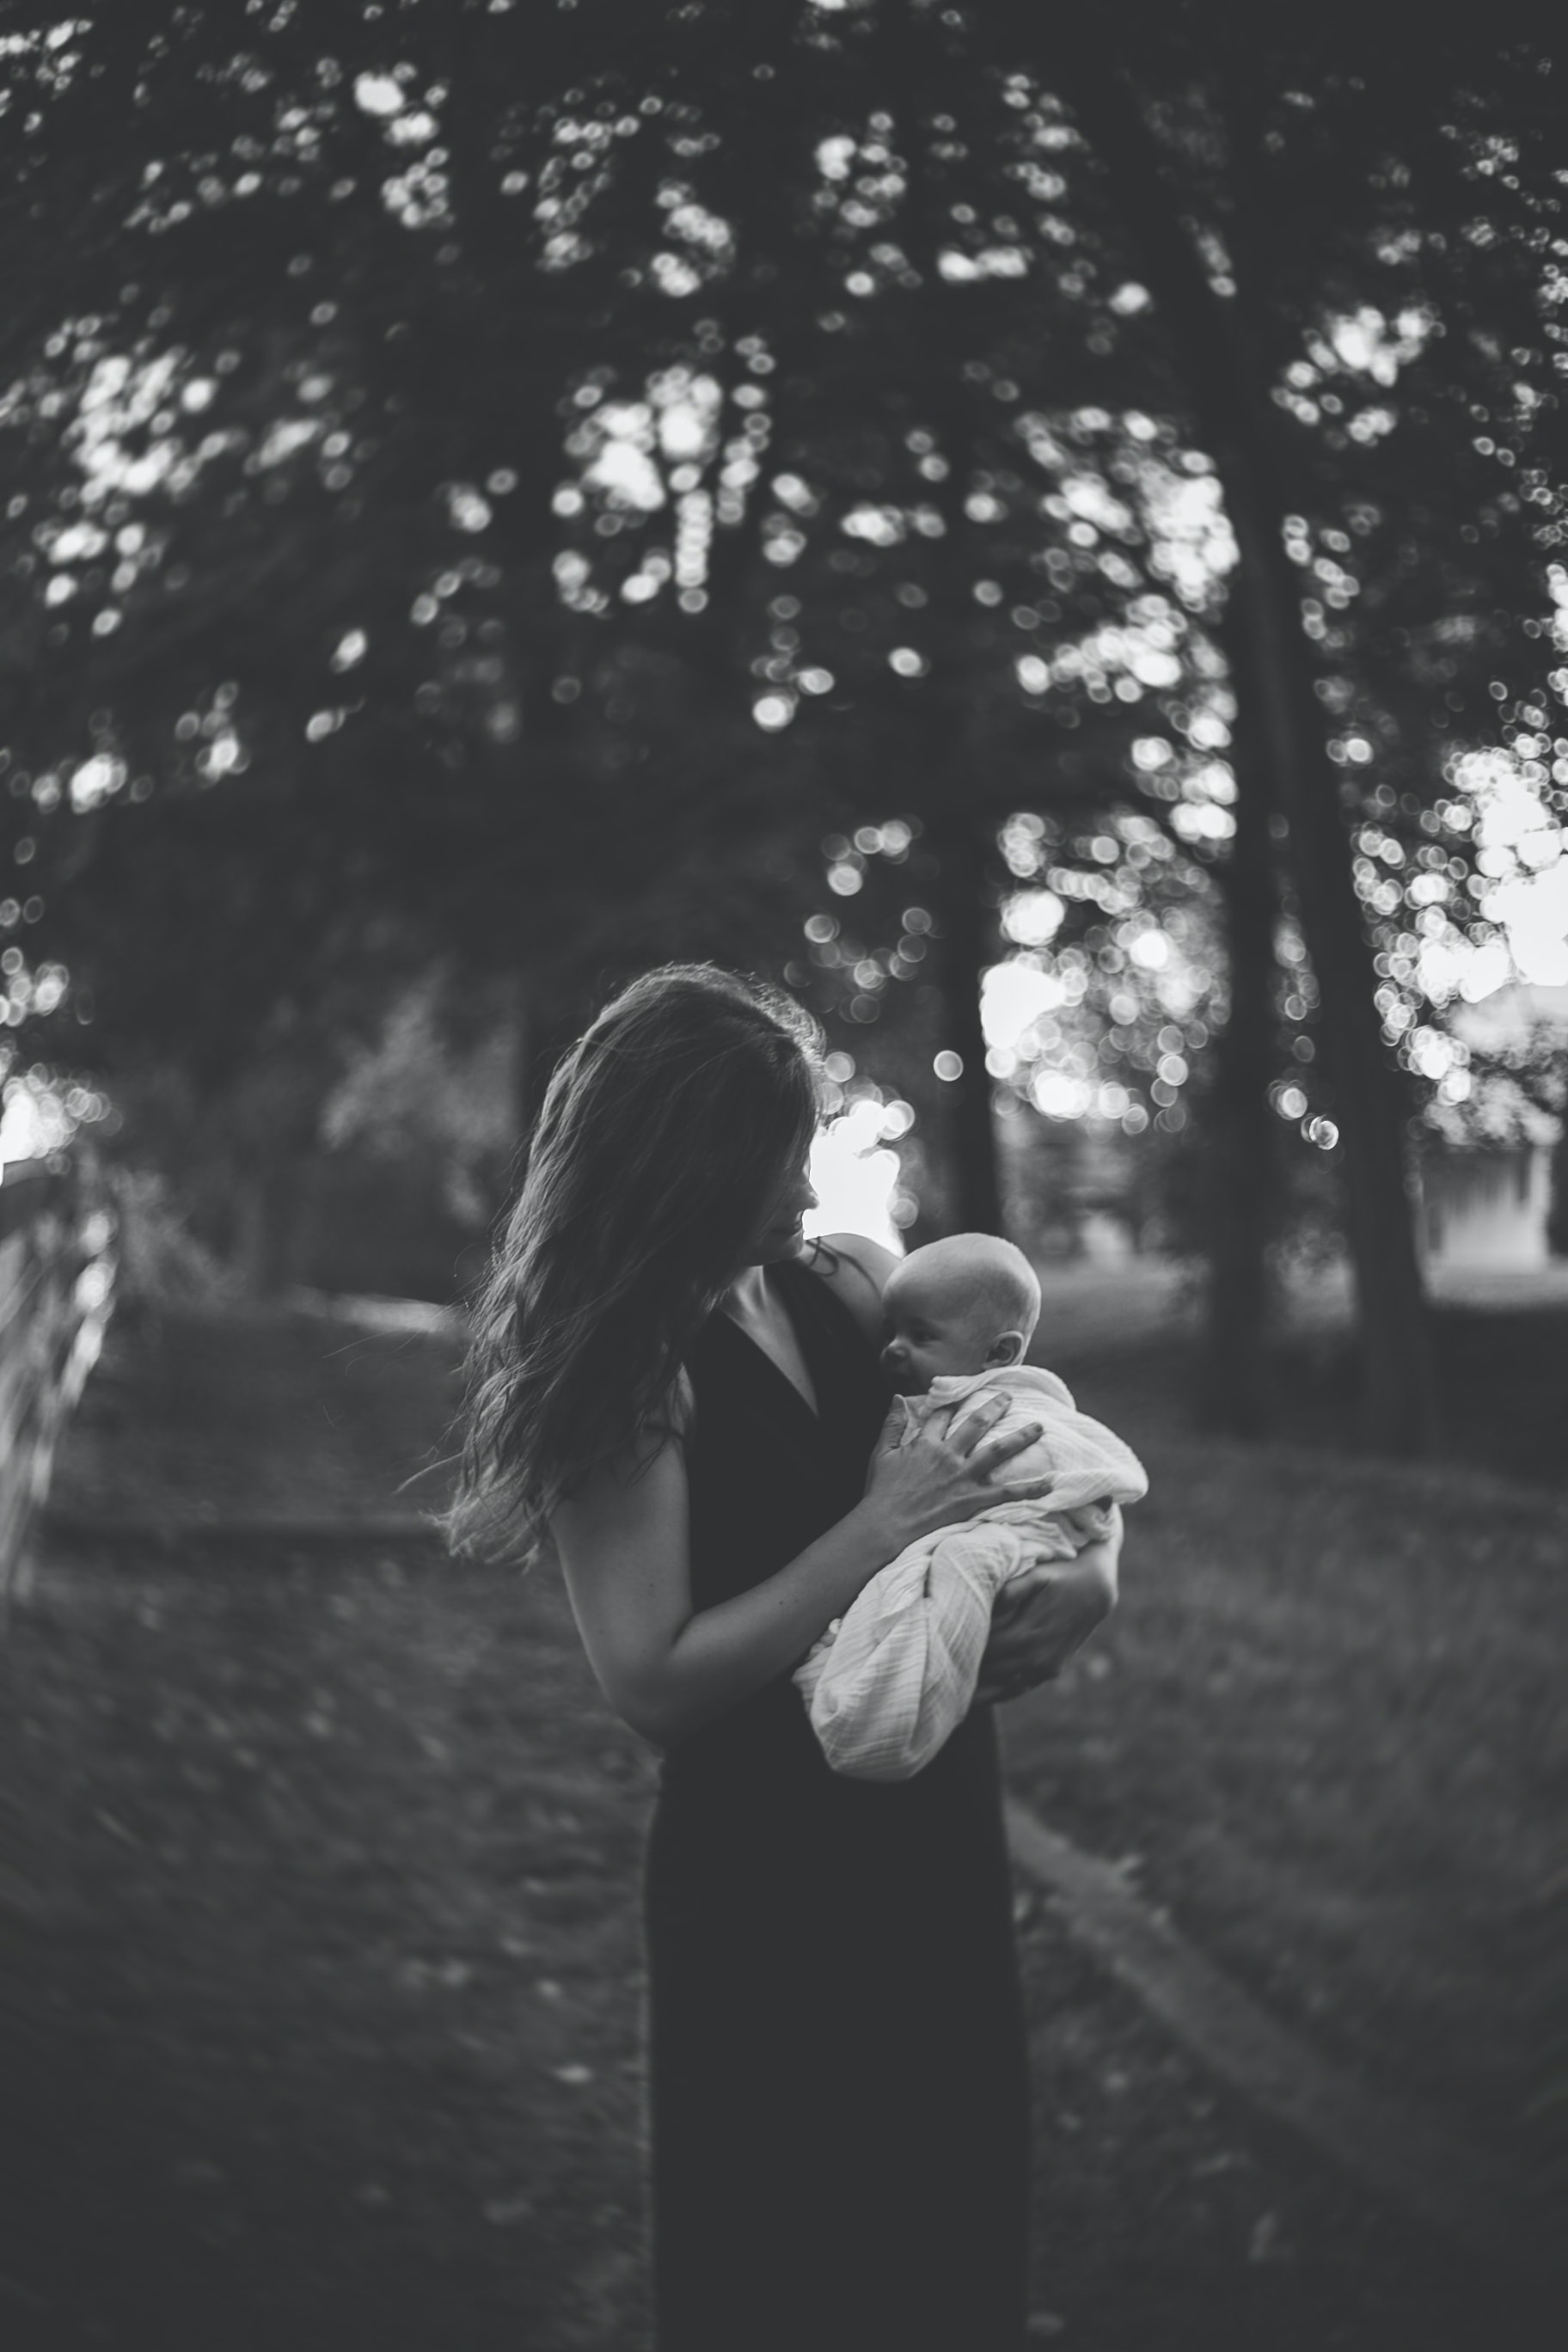 grayscale photography of woman carrying her child